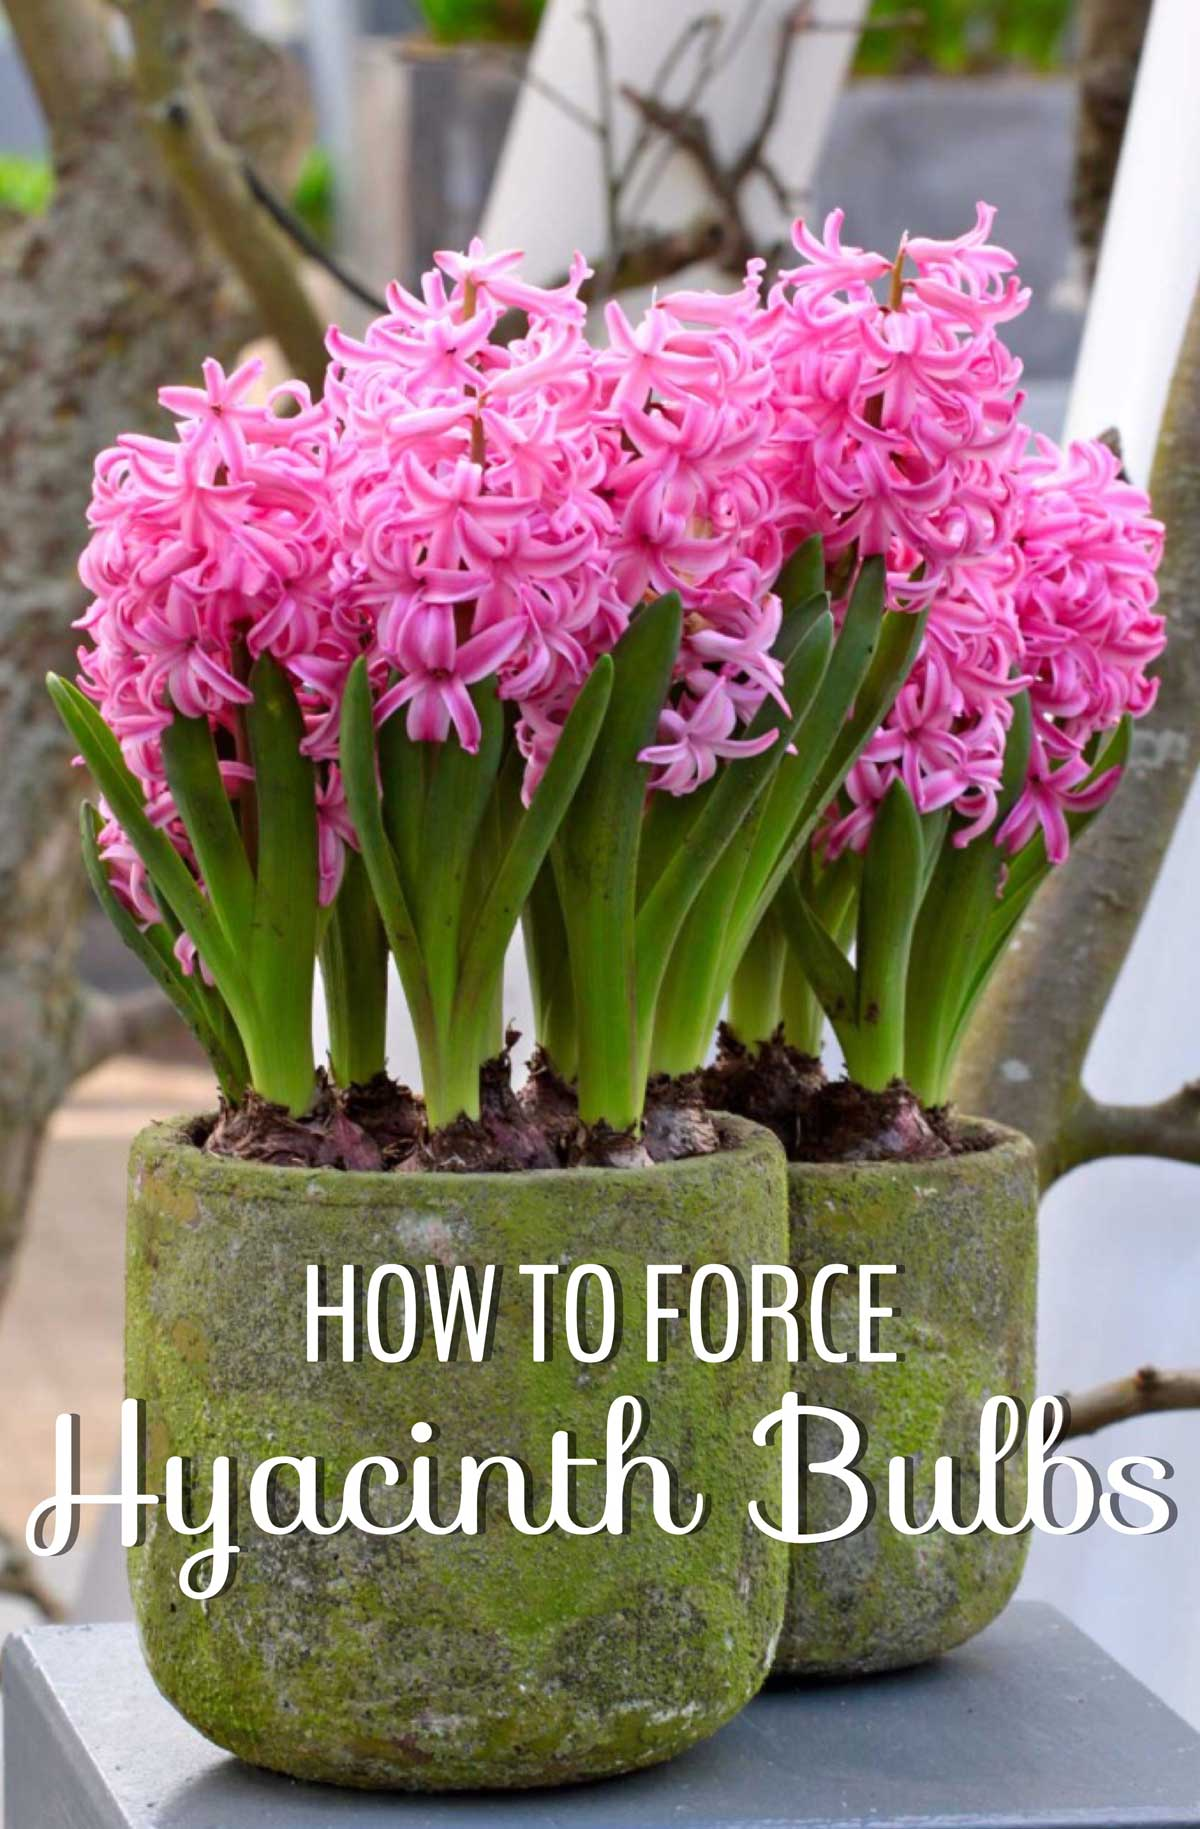 How to force hyacinth bulbs for indoor flowers longfield gardens how to force hyacinth bulbs for indoor flowers reviewsmspy